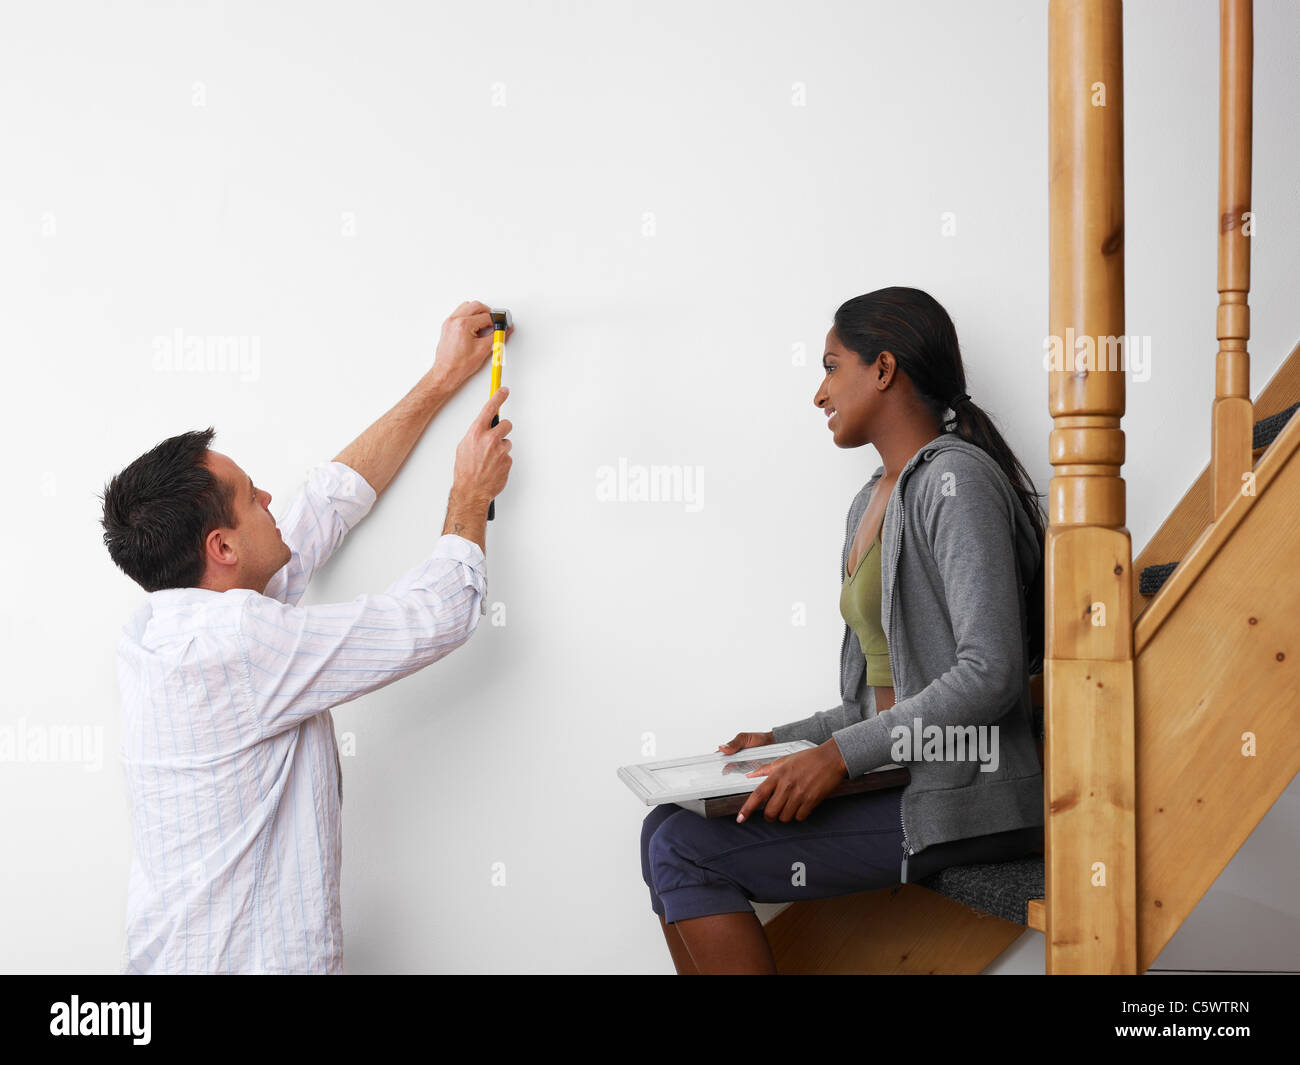 mid adult multiethnic couple using hammer to hang pictures to the wall and smiling. Copy space - Stock Image